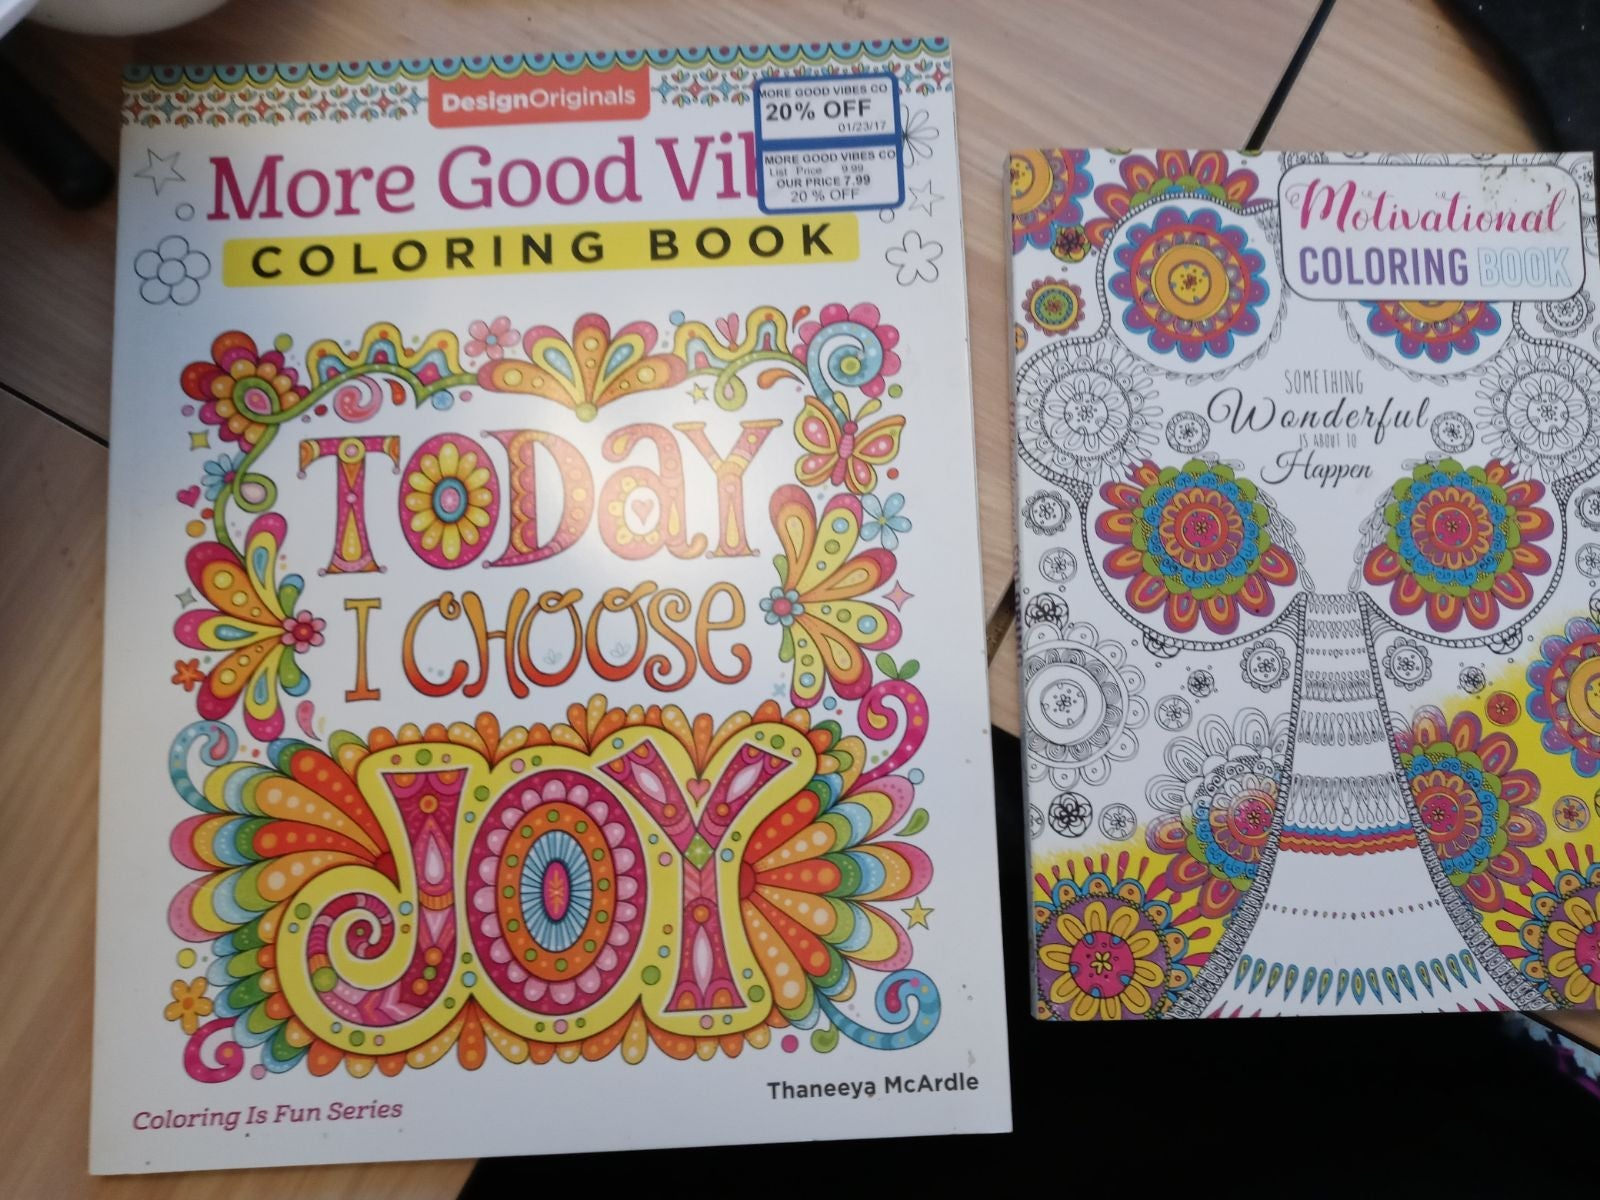 2 Motivational Adult Coloring Books